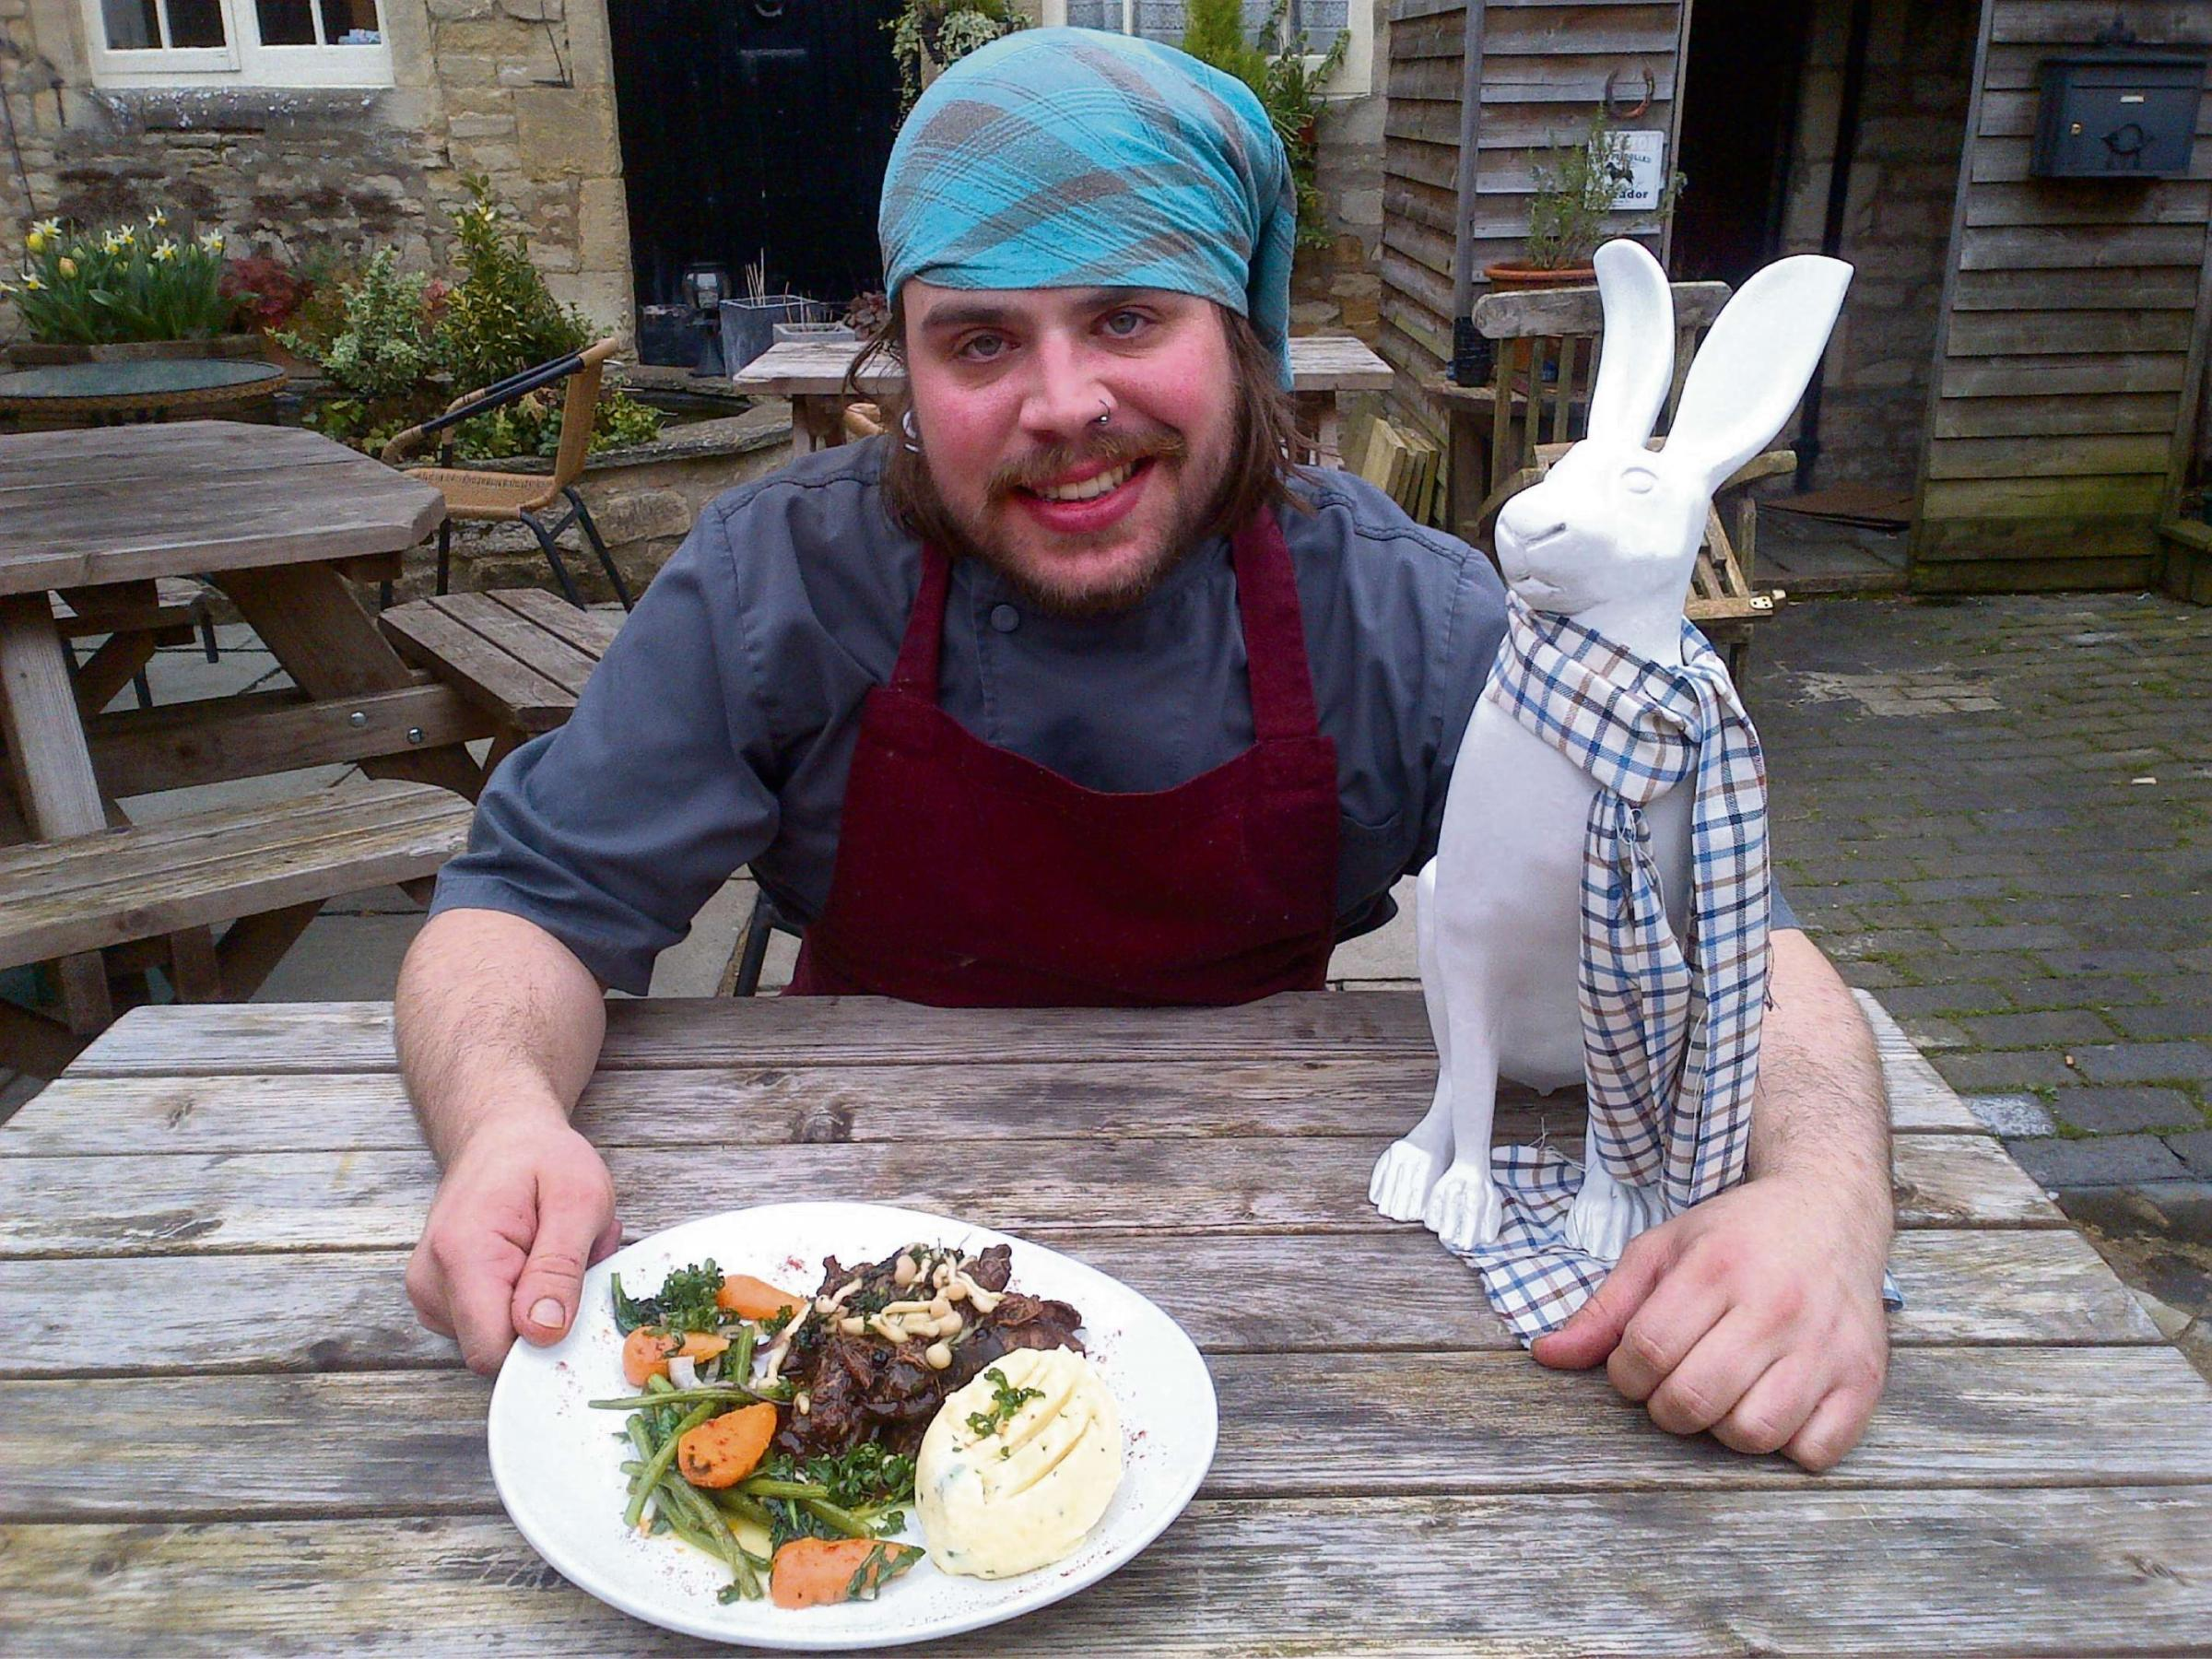 Head chef at the Golden Cross Toby Refoy with his new hare dish